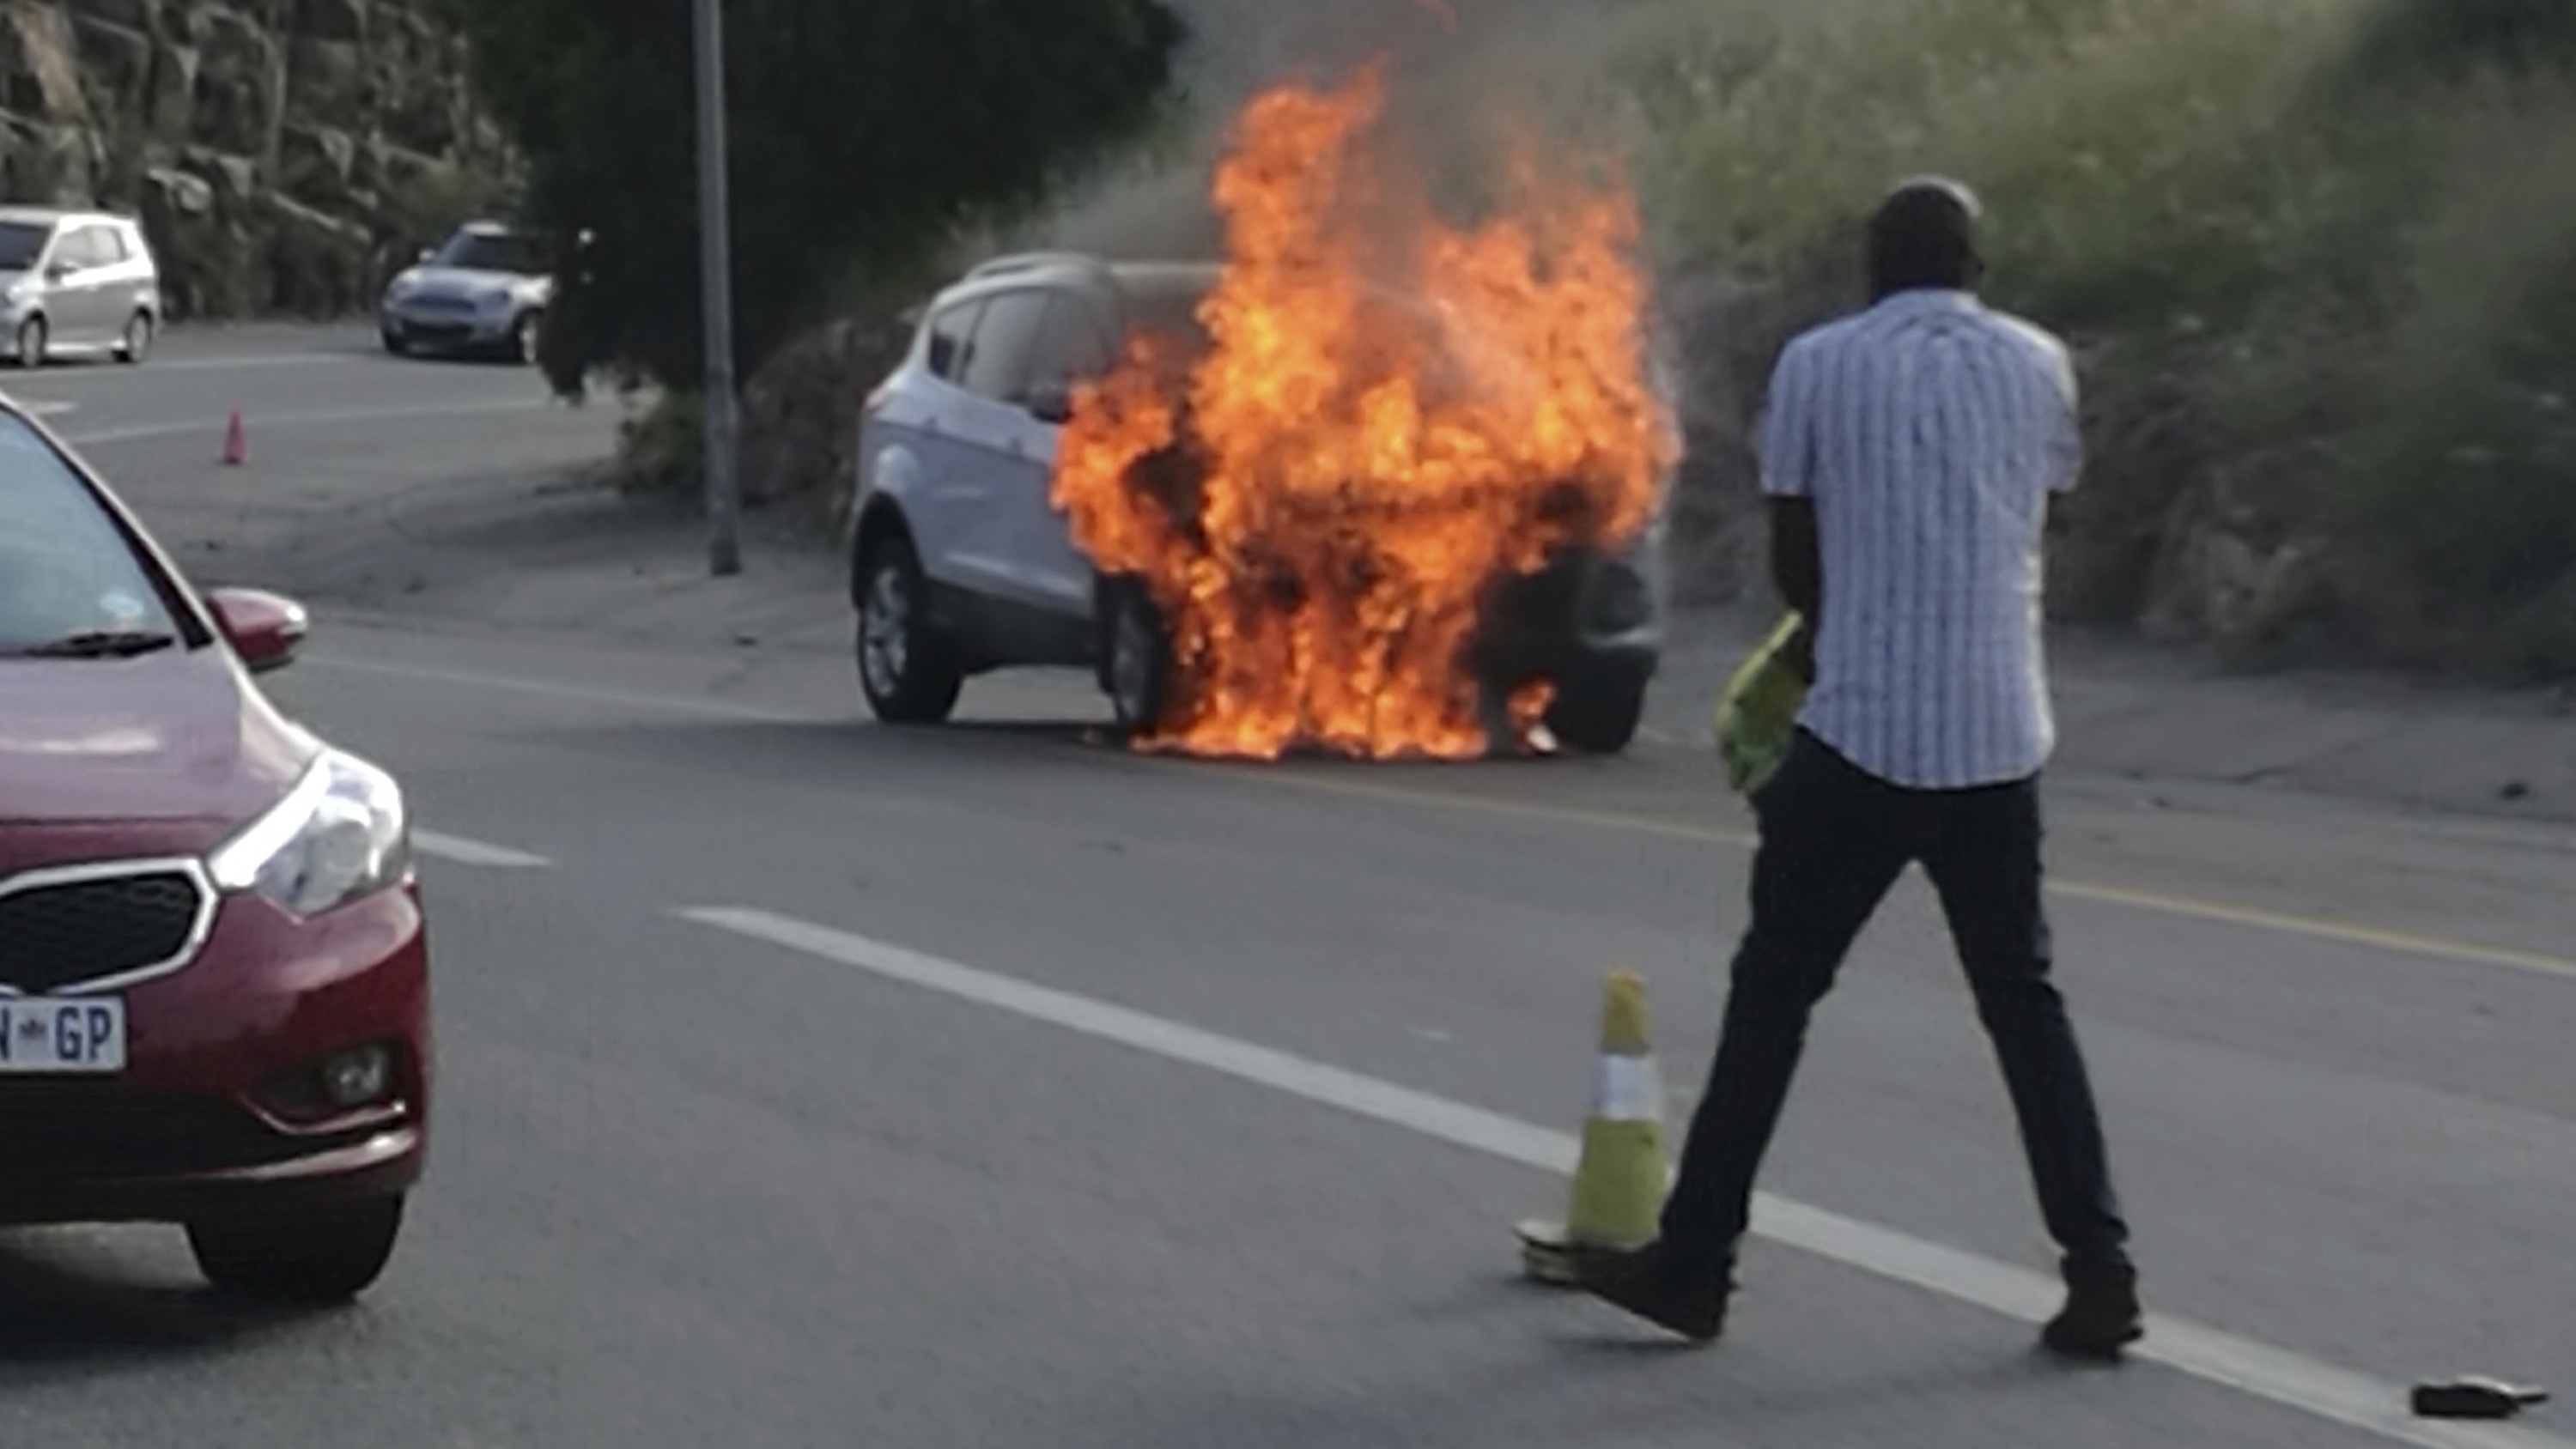 In this photo taken Thursday, Jan. 12, 2017 the 2013 Ford Kuga owned by Warren Krog burns out in Alberton Johannesburg. The South African unit of the Ford car company says it is recalling 4,556 Kuga SUVs following several dozen reports of the car catching fire. Jeff Nemeth, Ford's regional chief executive, said Monday Jan. 16 2017, that 1.6-liter Kugas made between December 2012 and February 2014 must be taken to a Ford dealer as soon as possible. (AP Photo/Warren Krog)